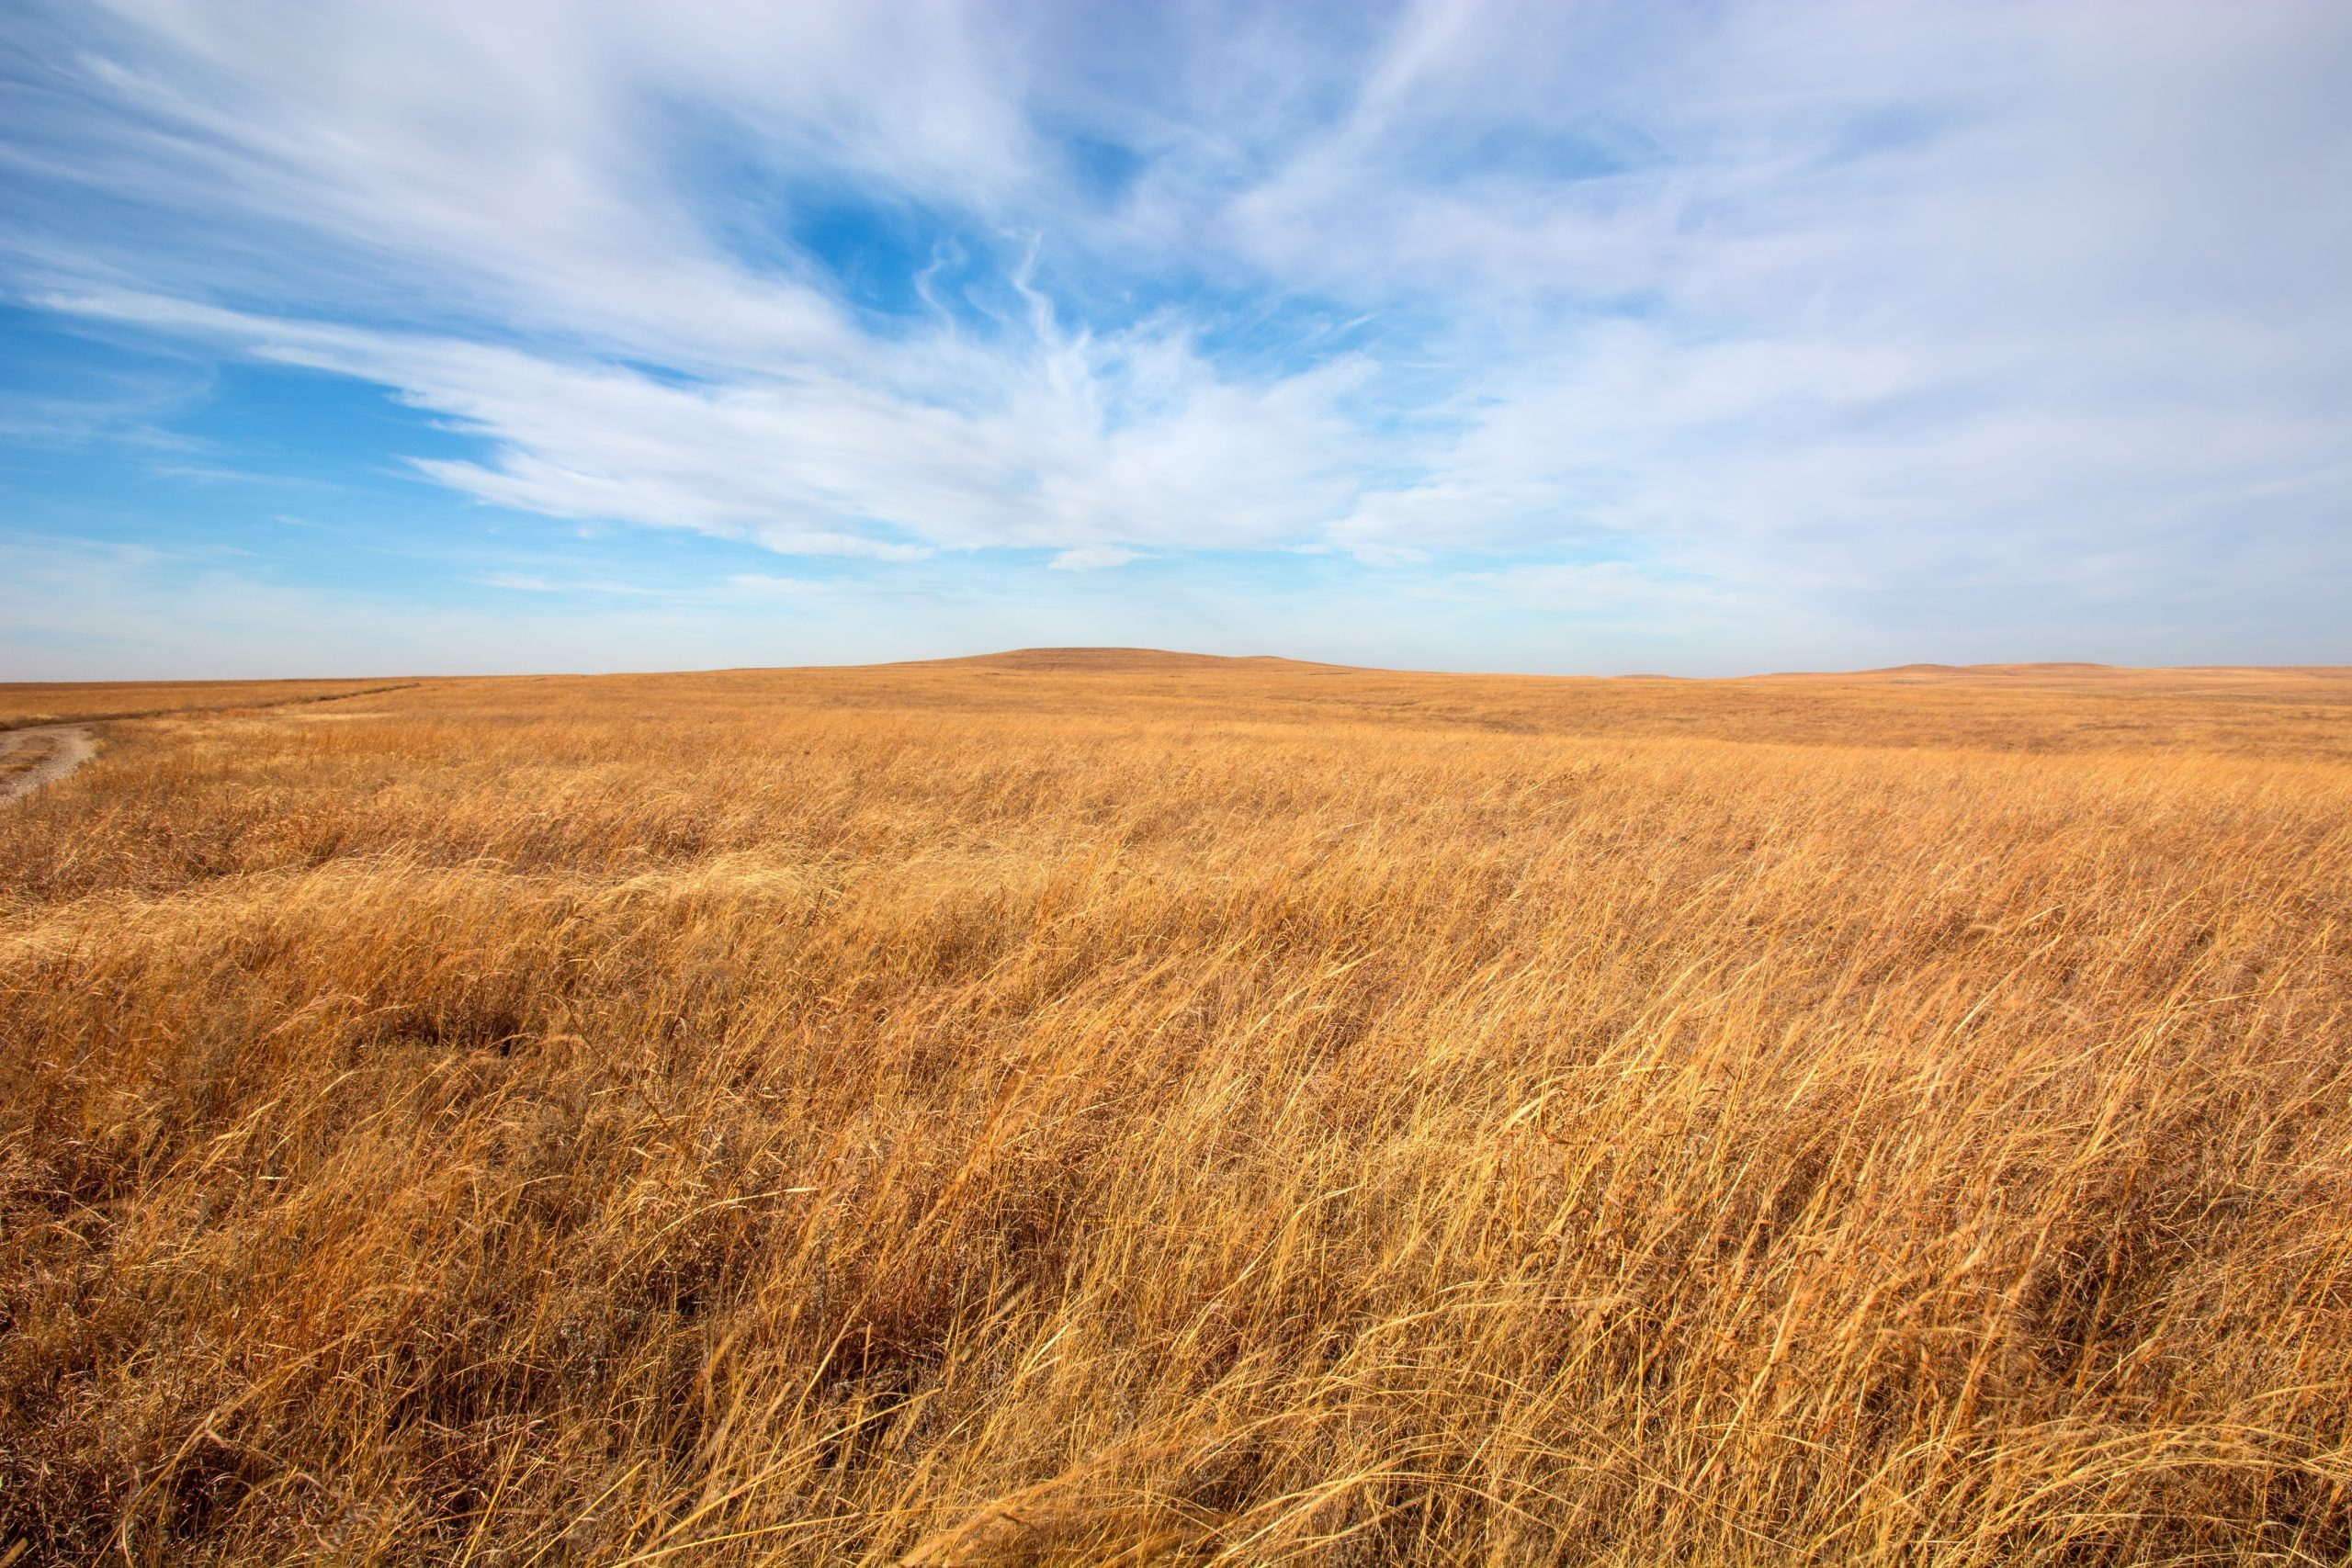 Flint Hills tallgrass prairie in Kansas.